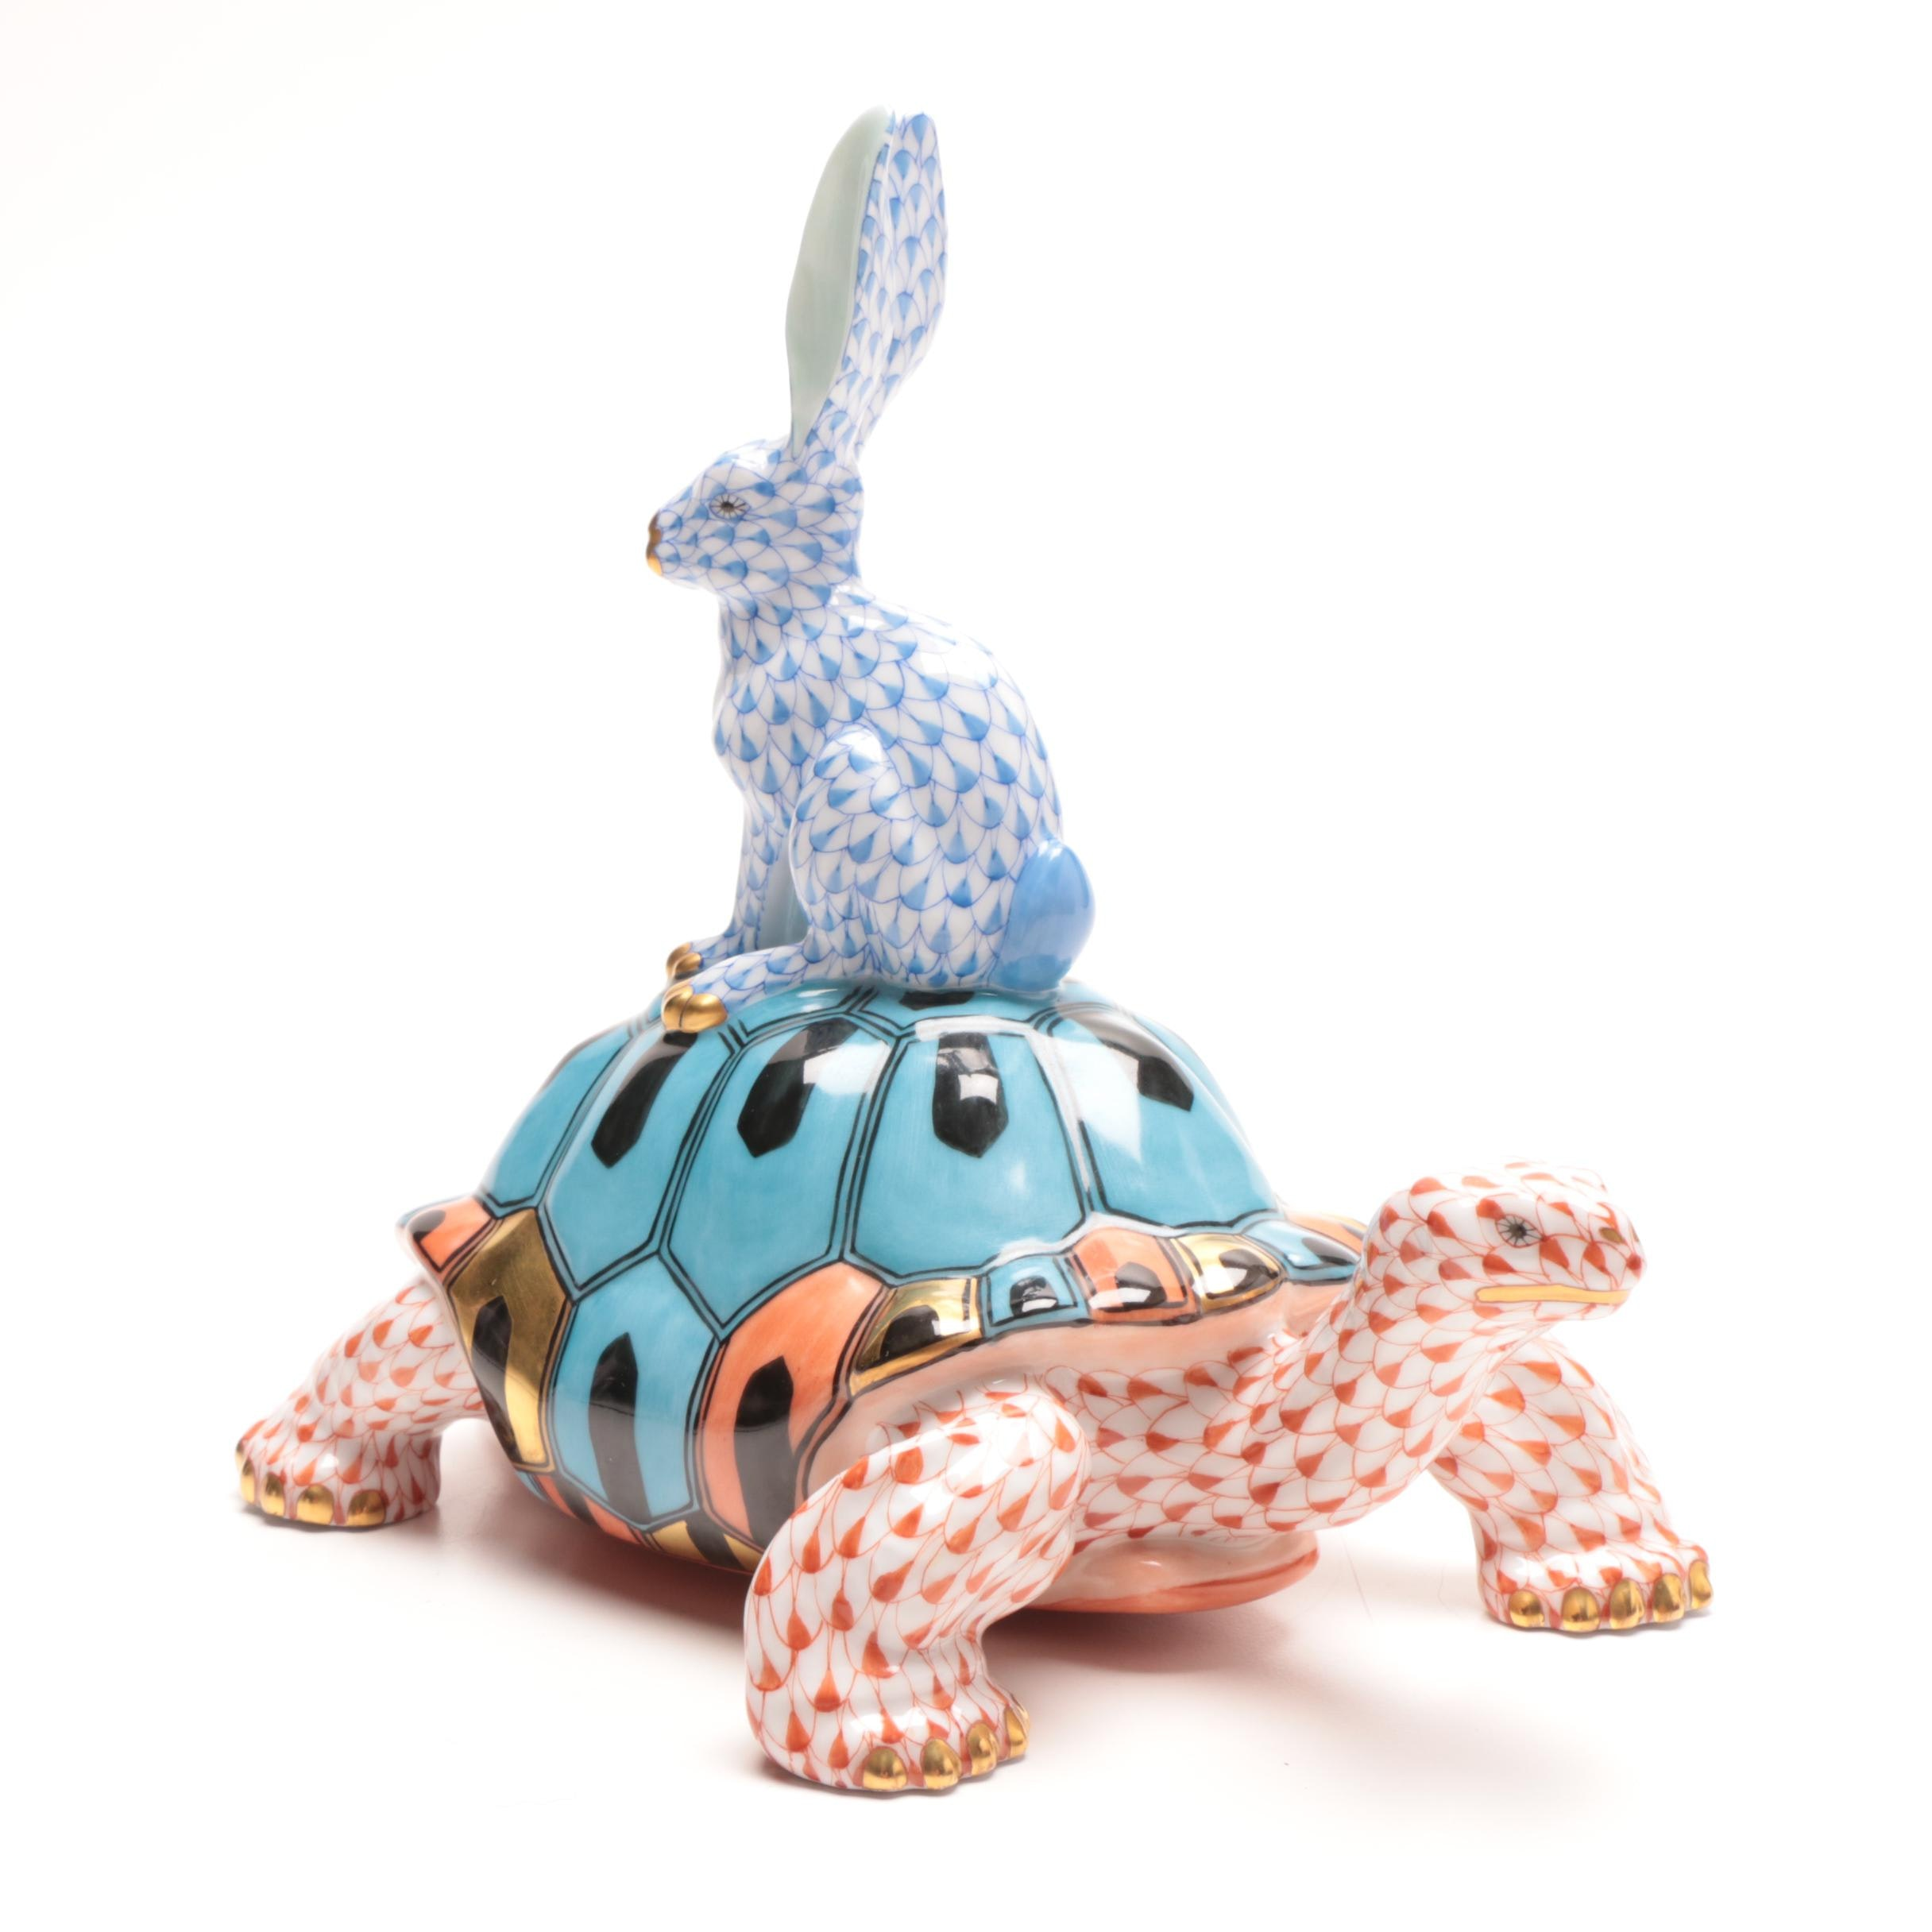 Herend Tortoise and Hare Figurine